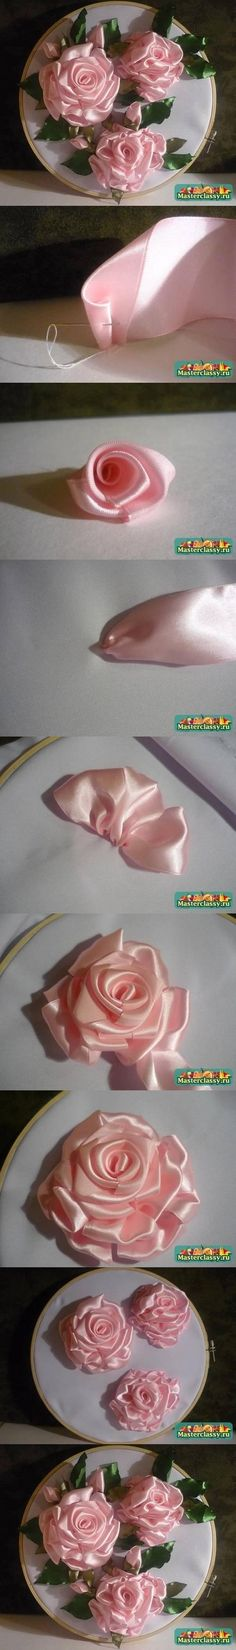 DIY Ribbon Crafts : DIY Ribbons Roses